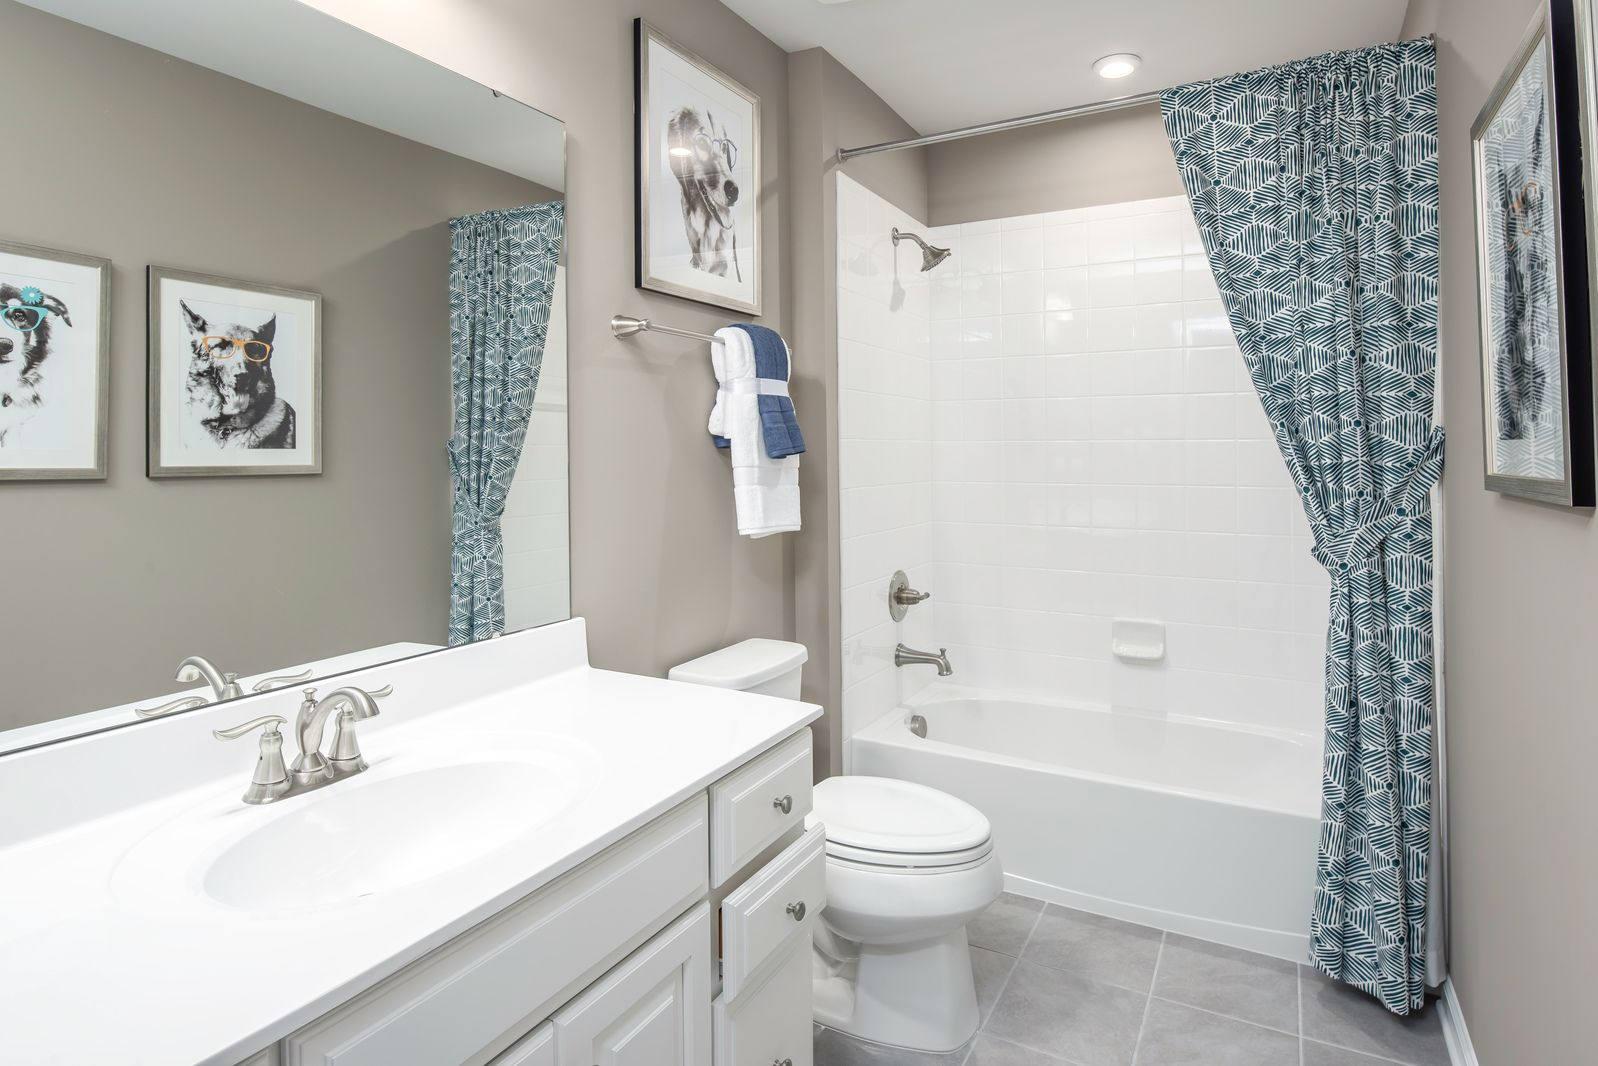 Bathroom featured in the Columbia By Ryan Homes in Washington, MD